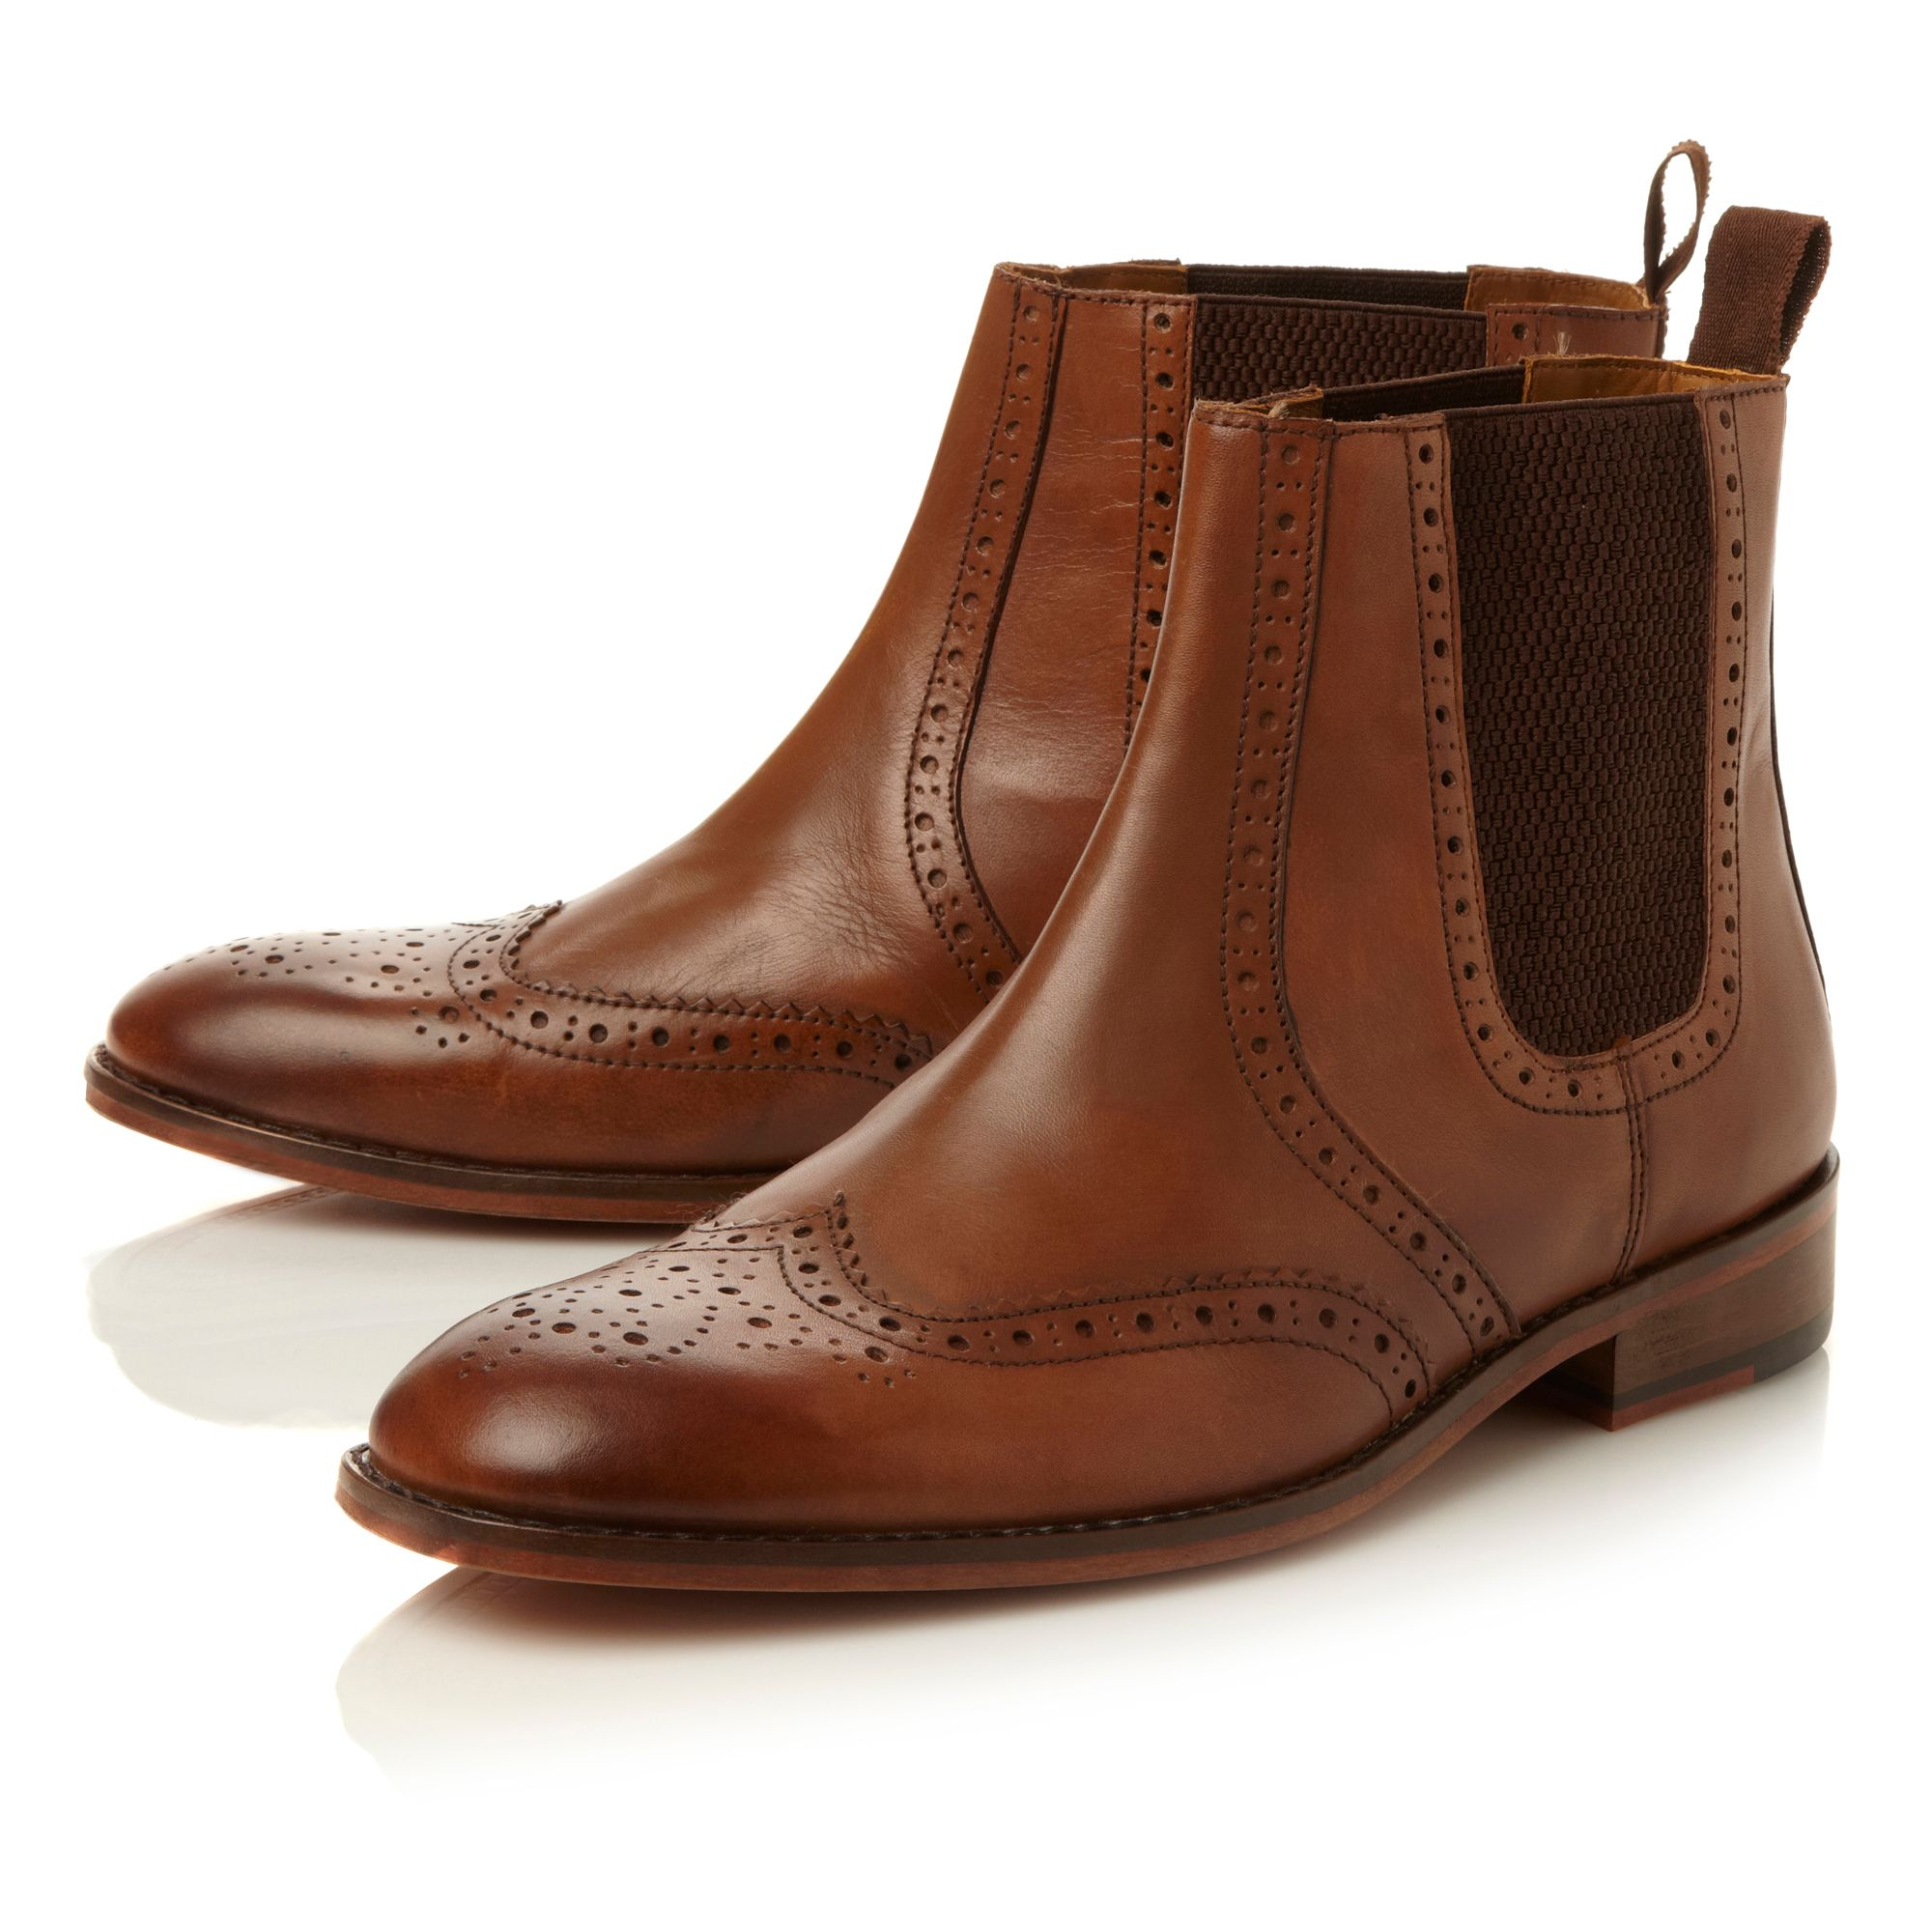 Montagu brogue chelsea boot